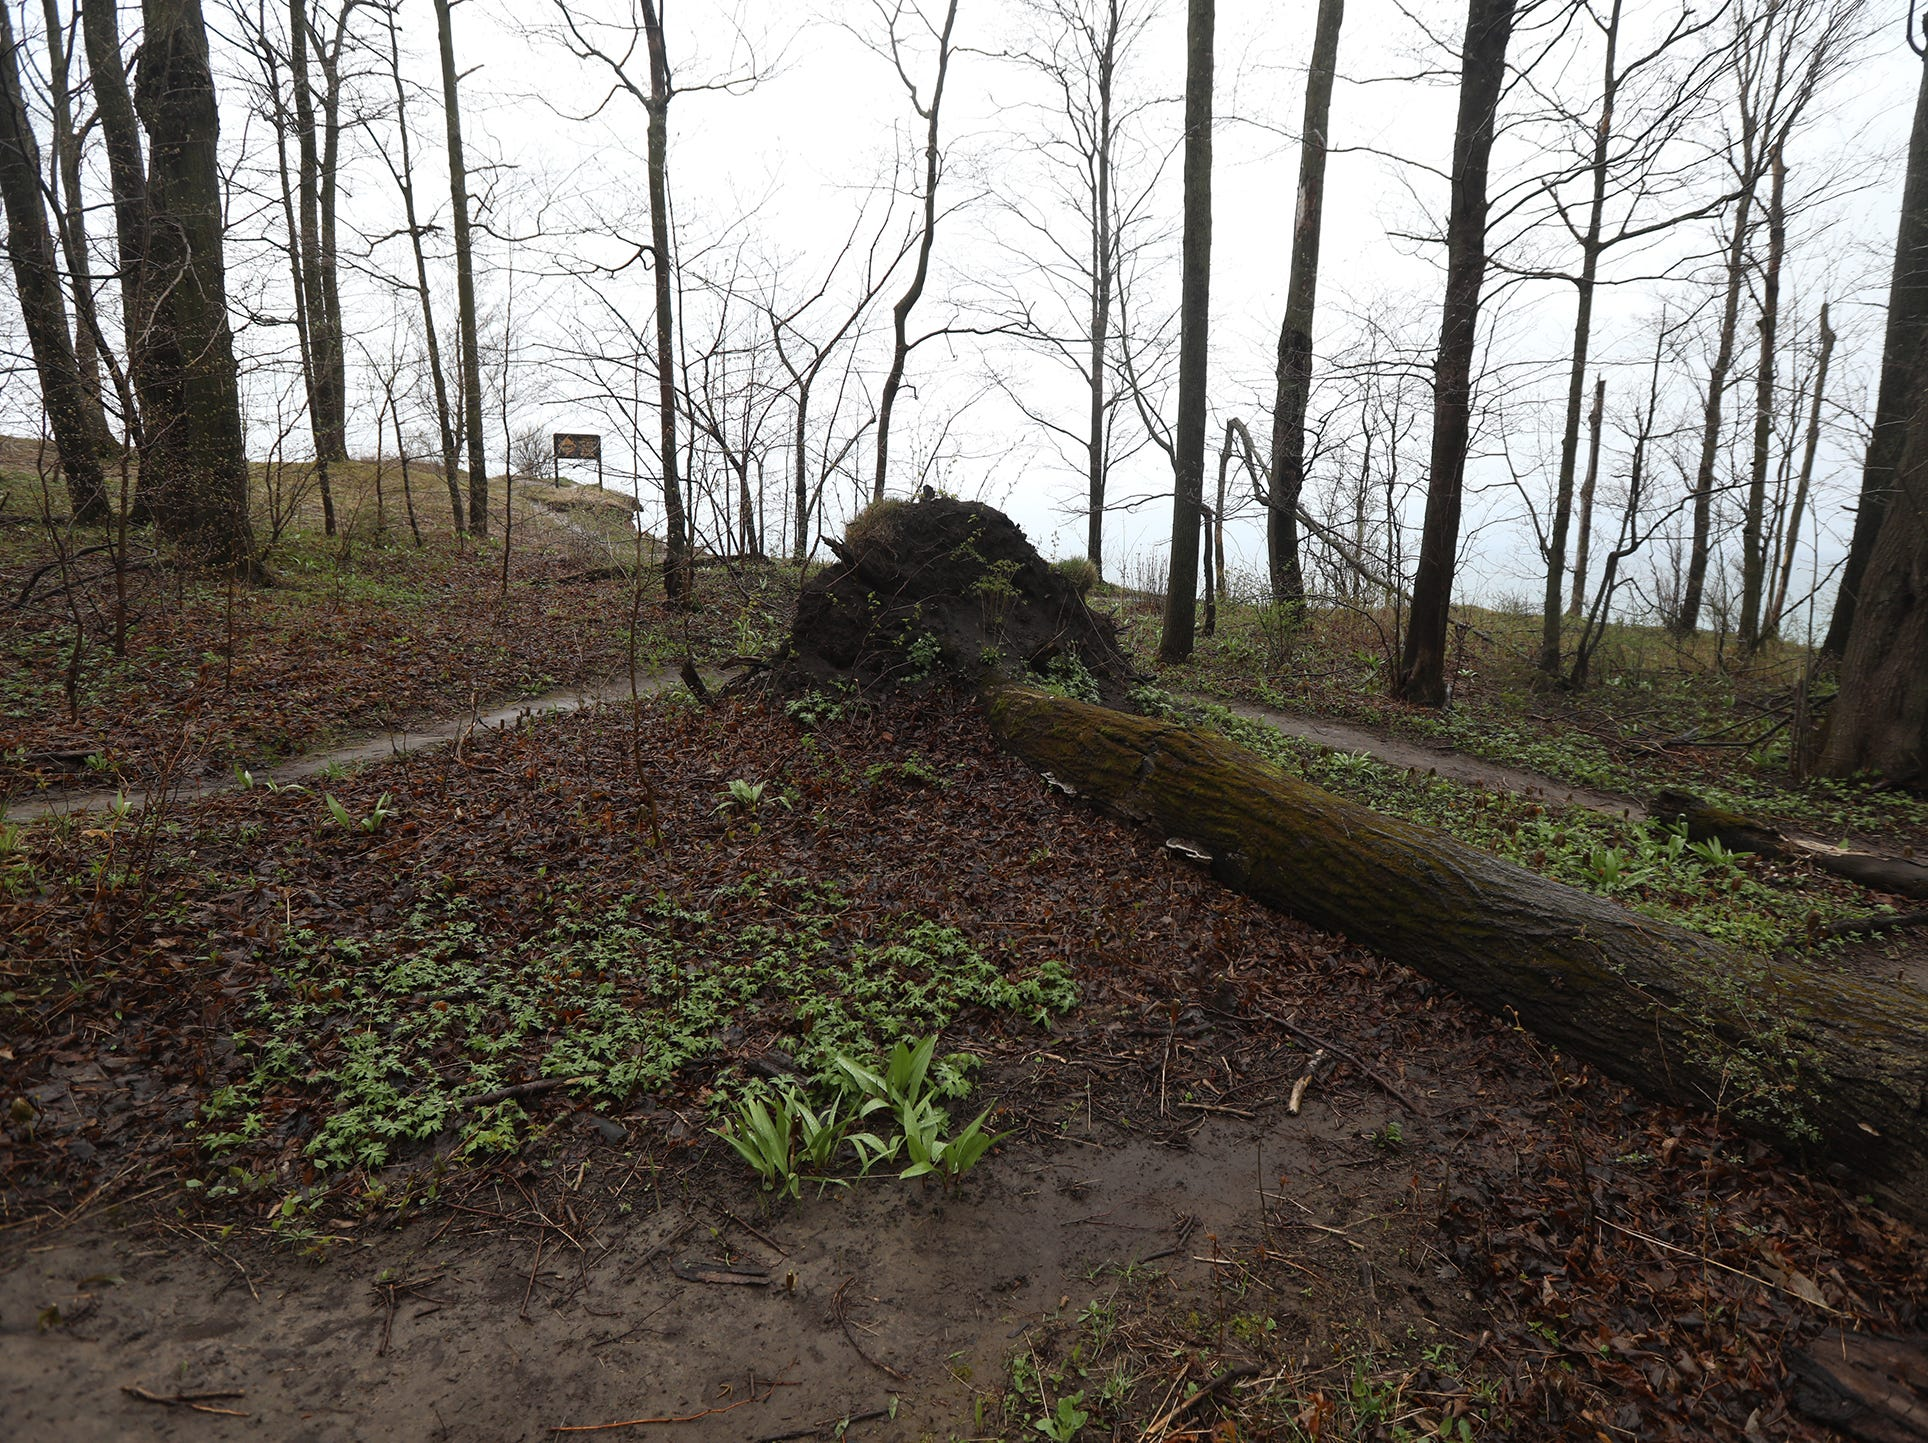 Downed trees cross some of the hiking paths.